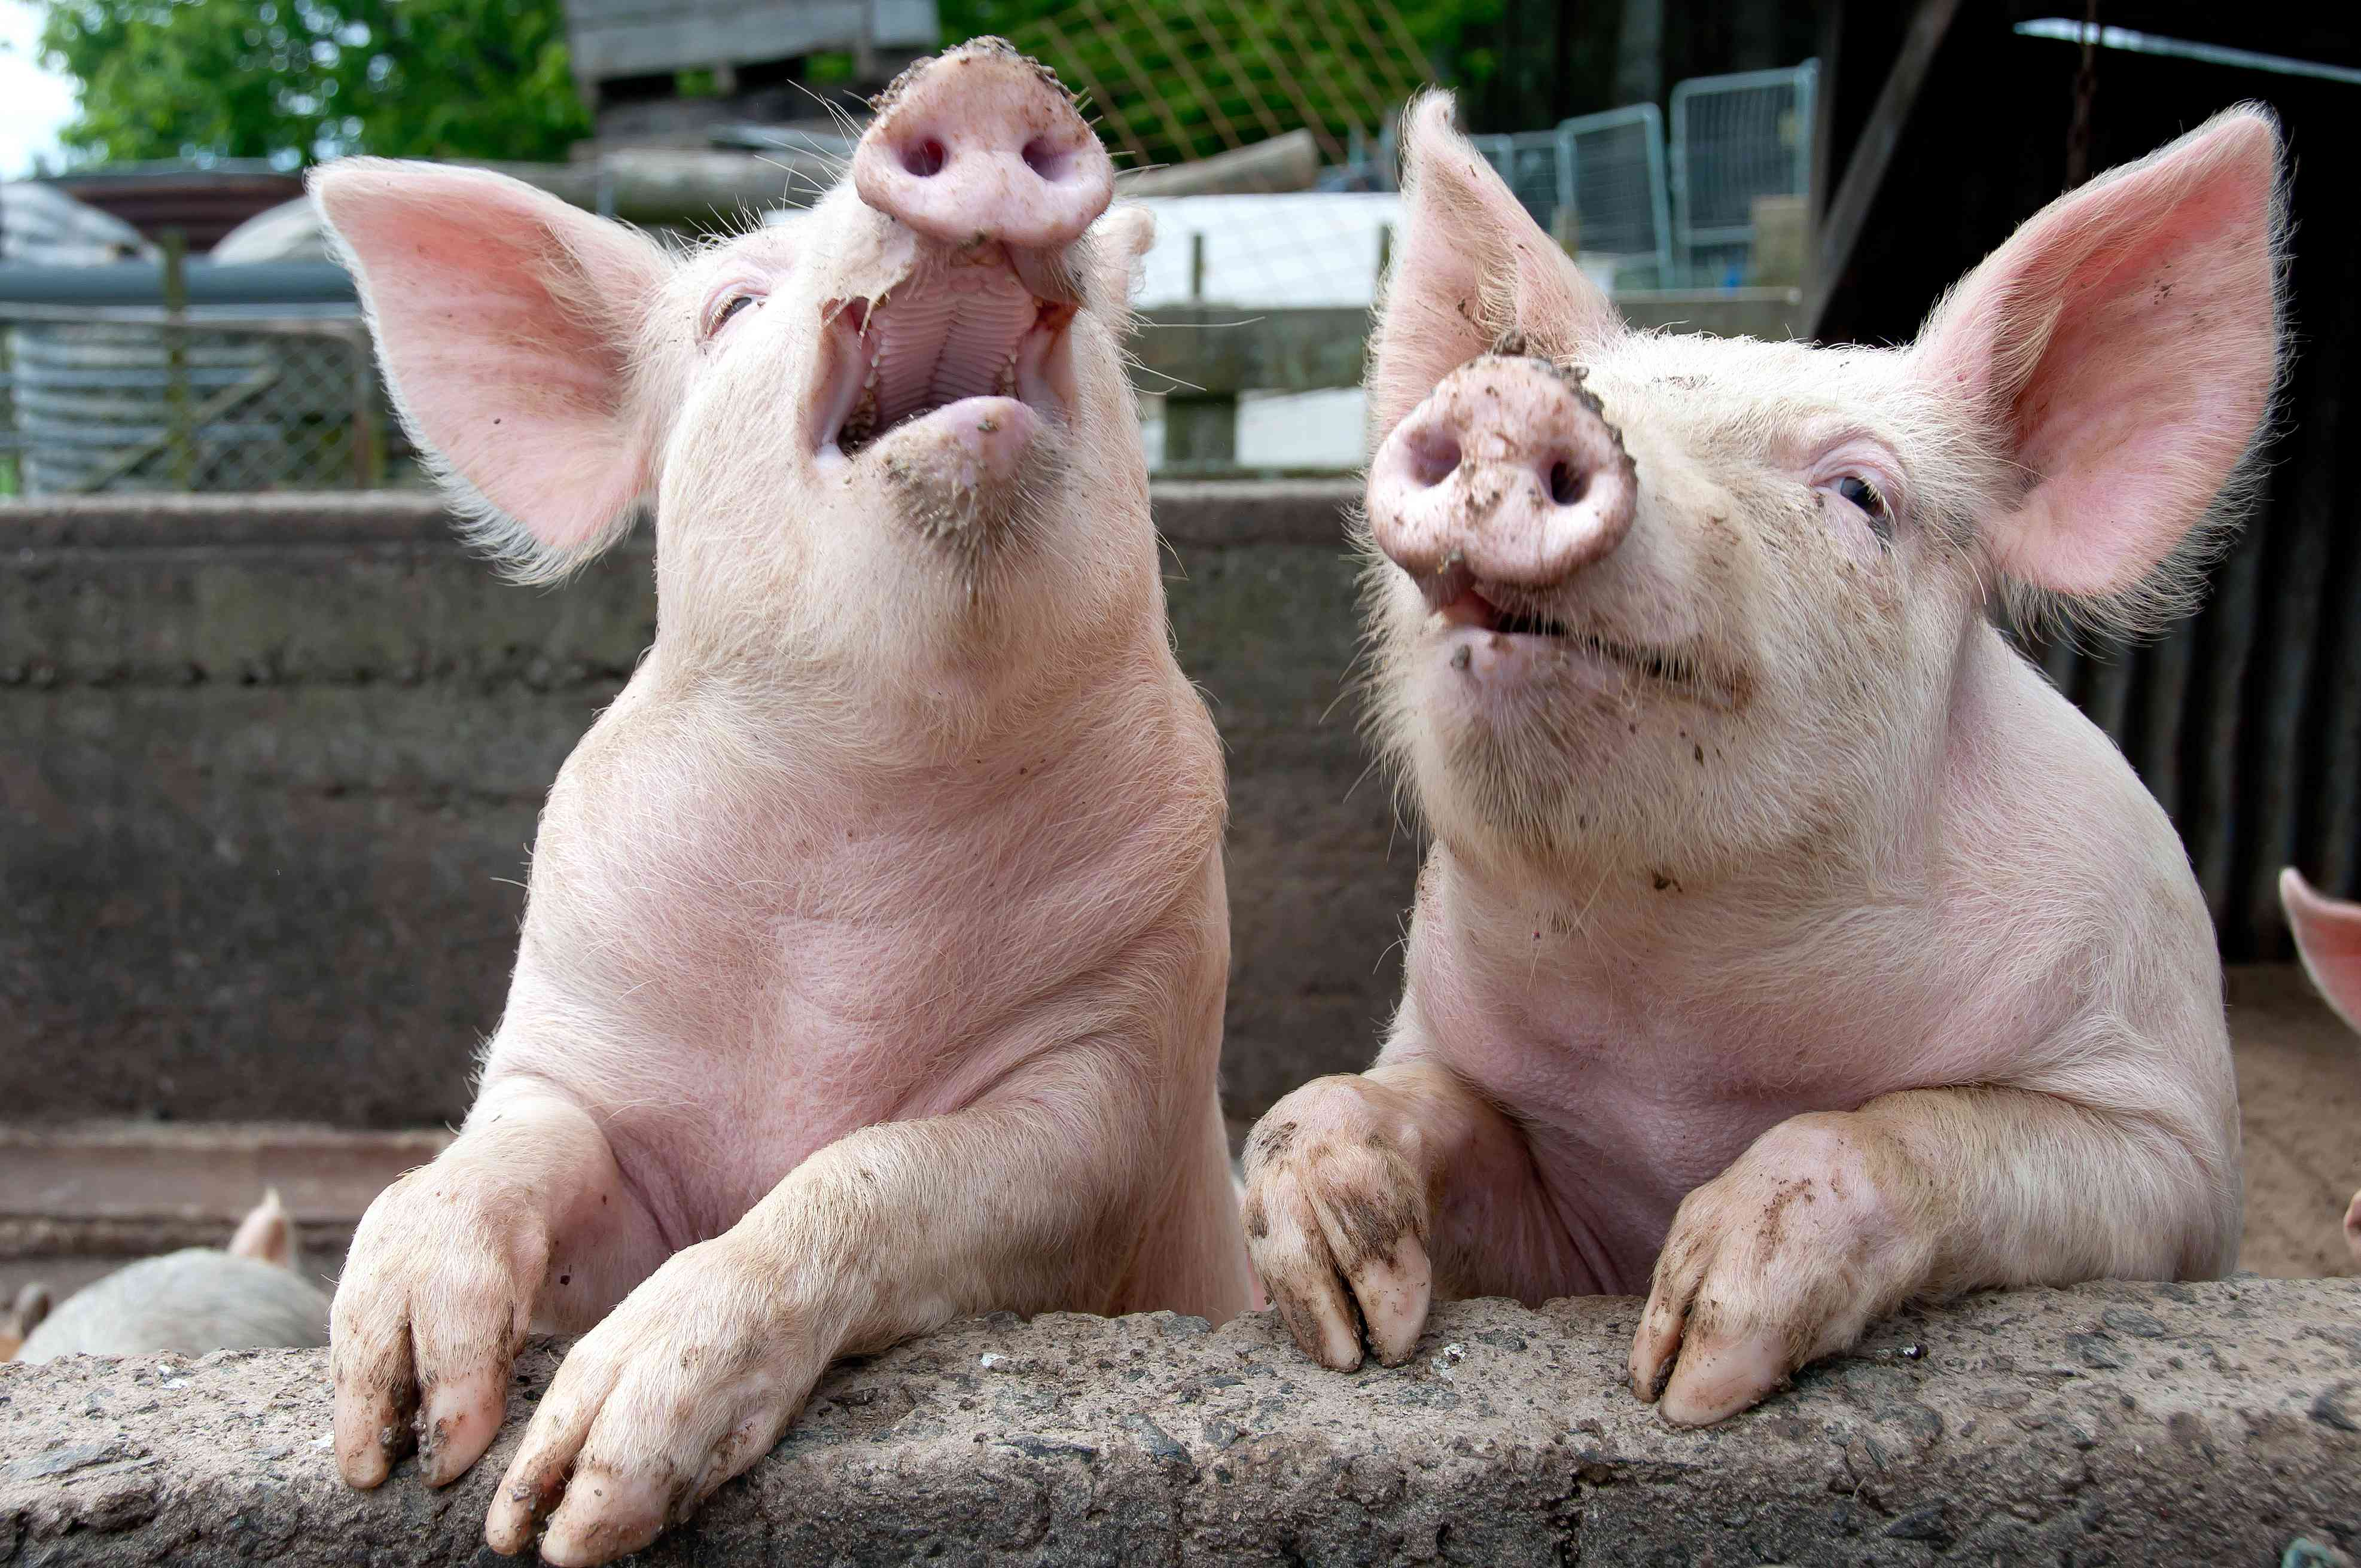 Millions of pigs dying from virus